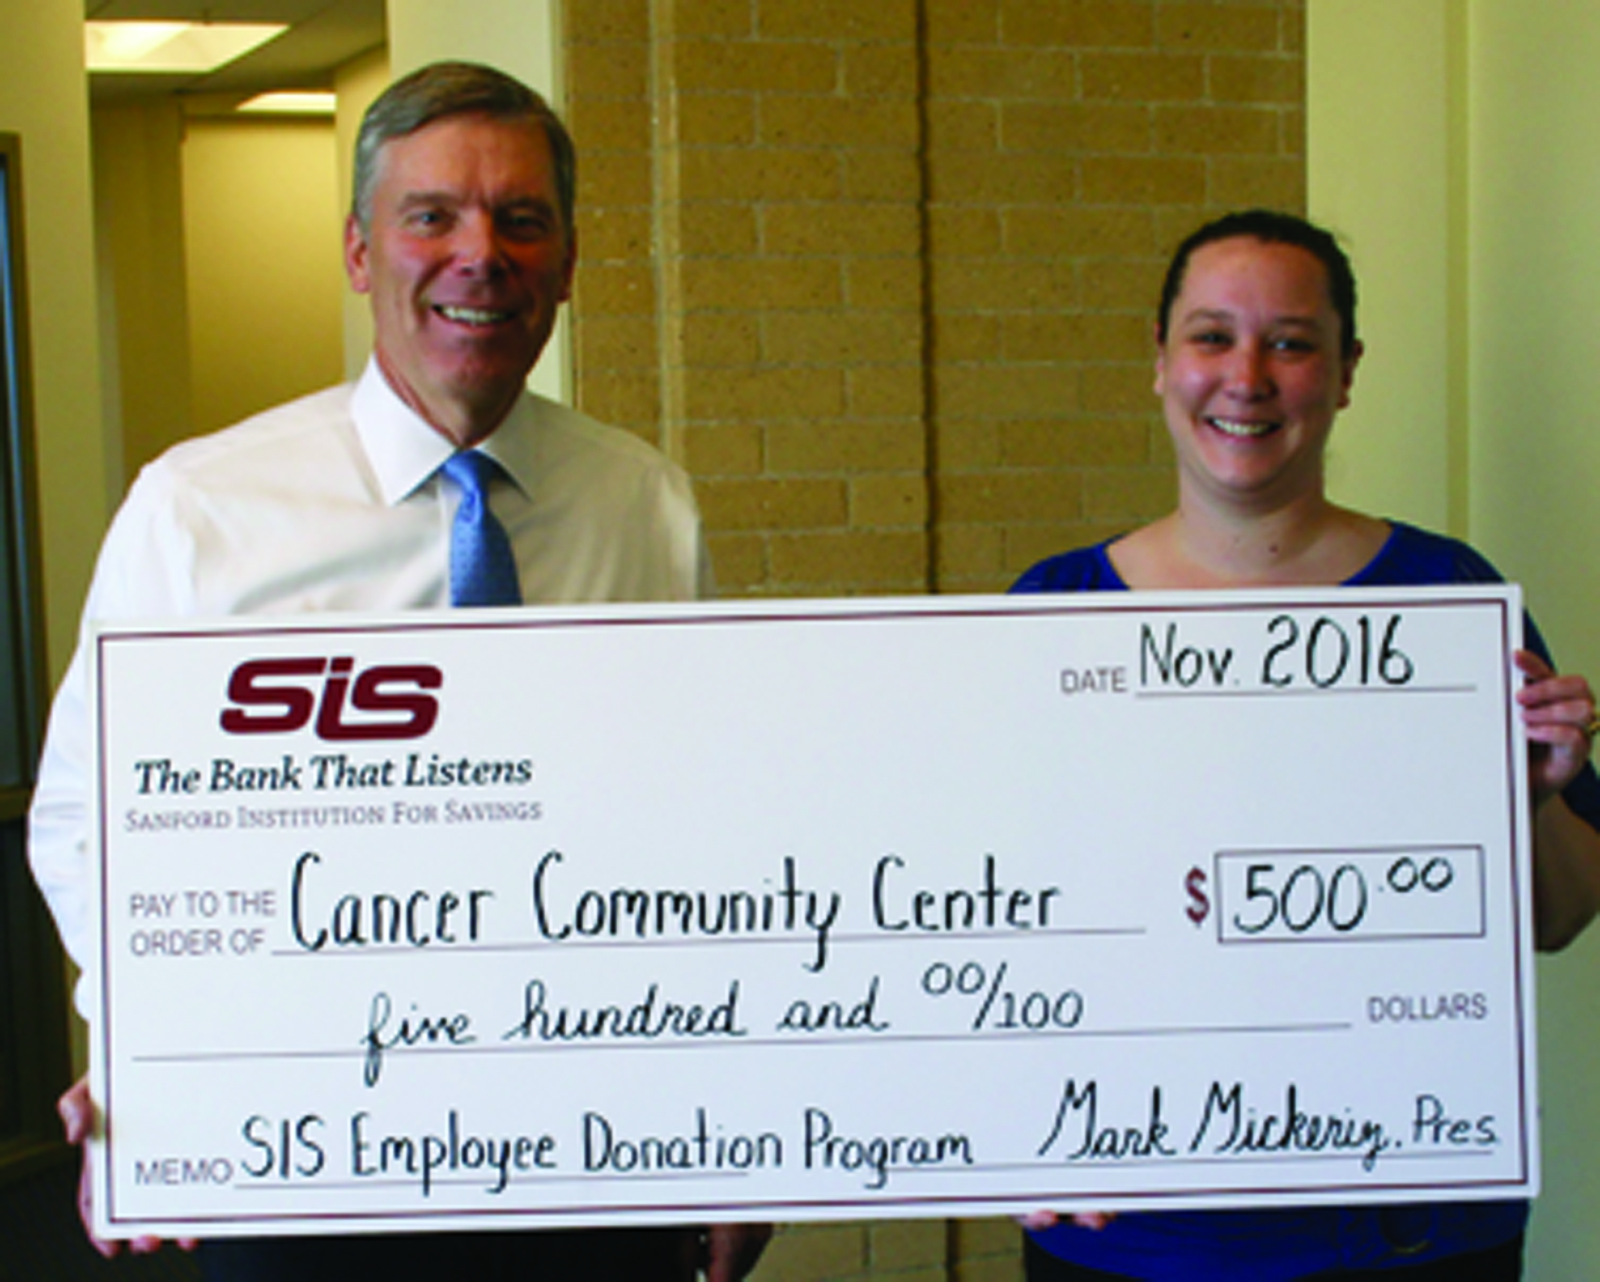 Mark Mickeriz, President and CEO of SIS Bank, left, presents a donation check to Miranda Wyatt, a Collections Clerk at the bank's Main Office  in Sanford.  She chose Cancer Community Center as her favorite nonprofit for the donation. Submitted photo